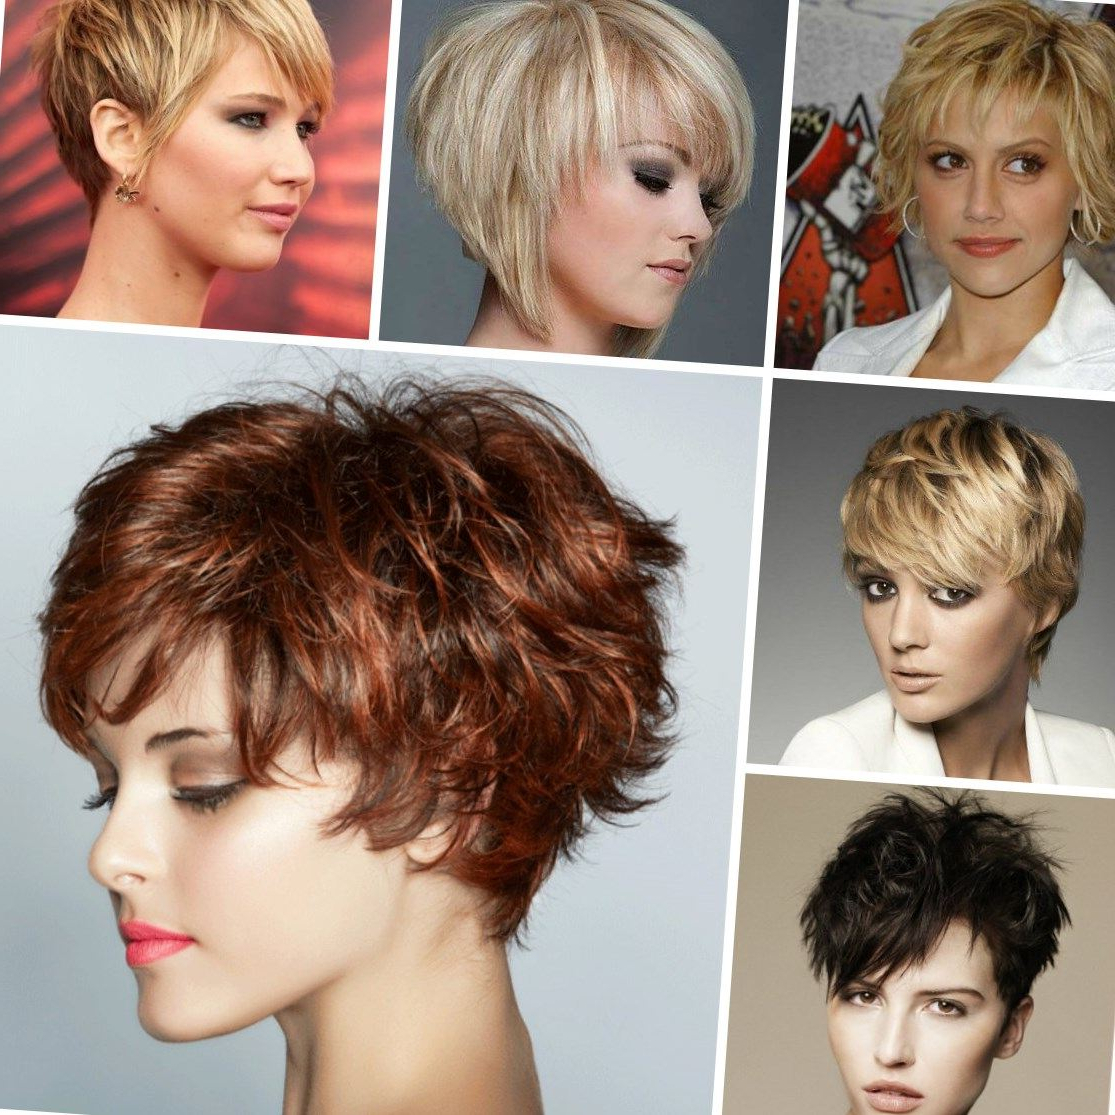 Haircuts For Older Women Short Hairstyles 20172018 Short Hairstyles Within Short Hairstyles For Spring (View 13 of 25)